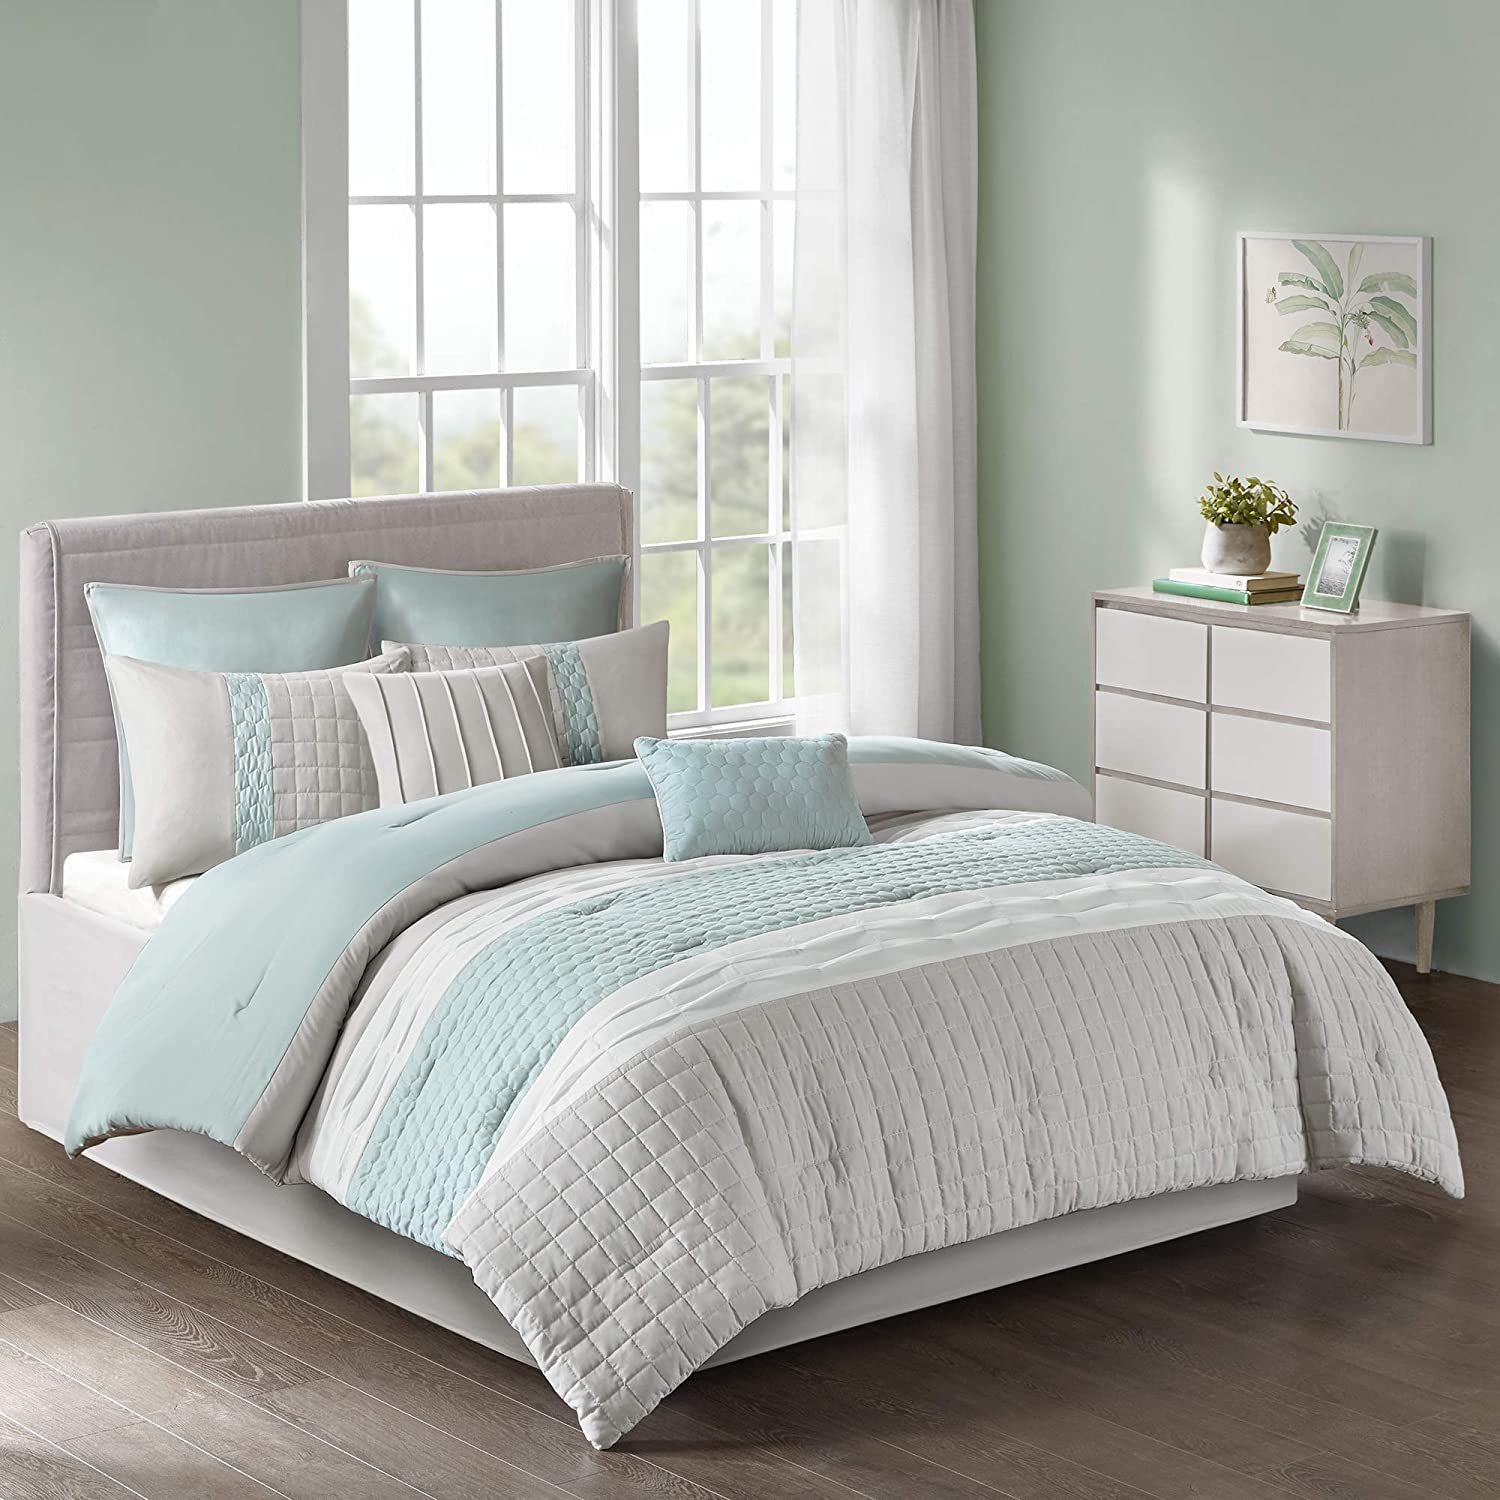 510 Design Tinsley 8 Piece Ultra Soft Quilted Comforter Set Bedding, King Size, Seafoam/Grey